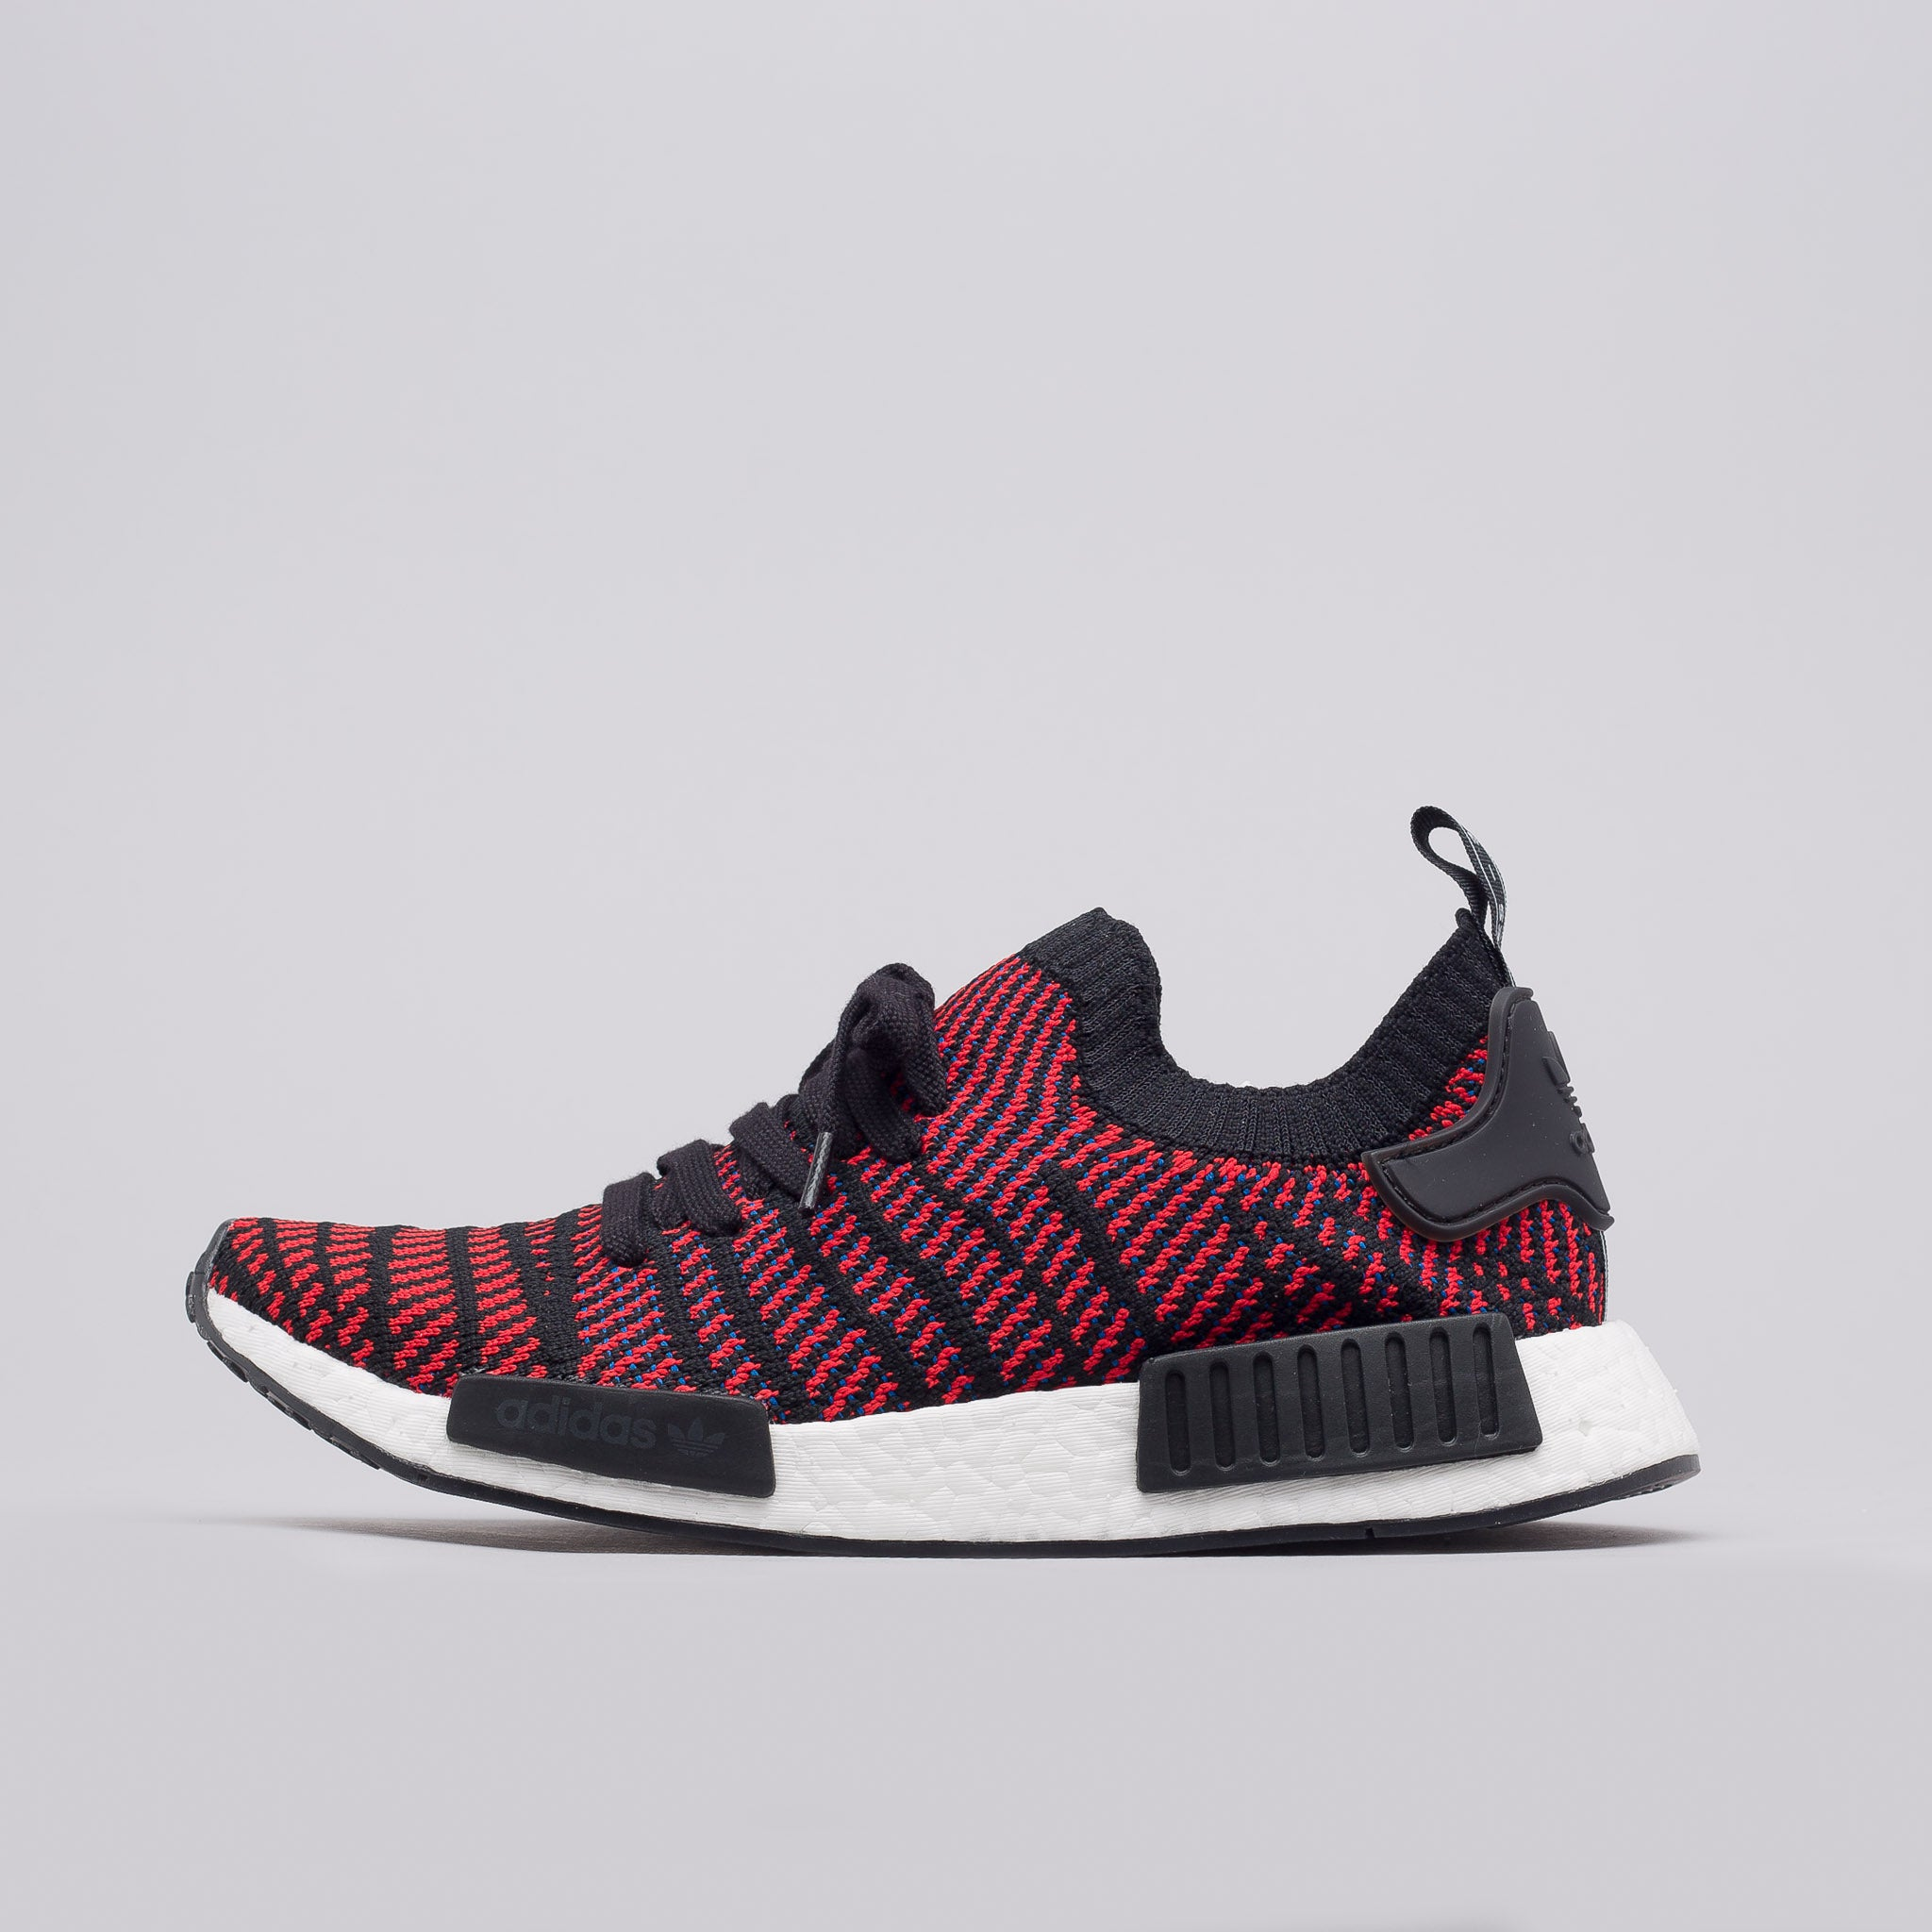 Adidas NMD R1 Runner Black Peach Salmon White s 75234.ph